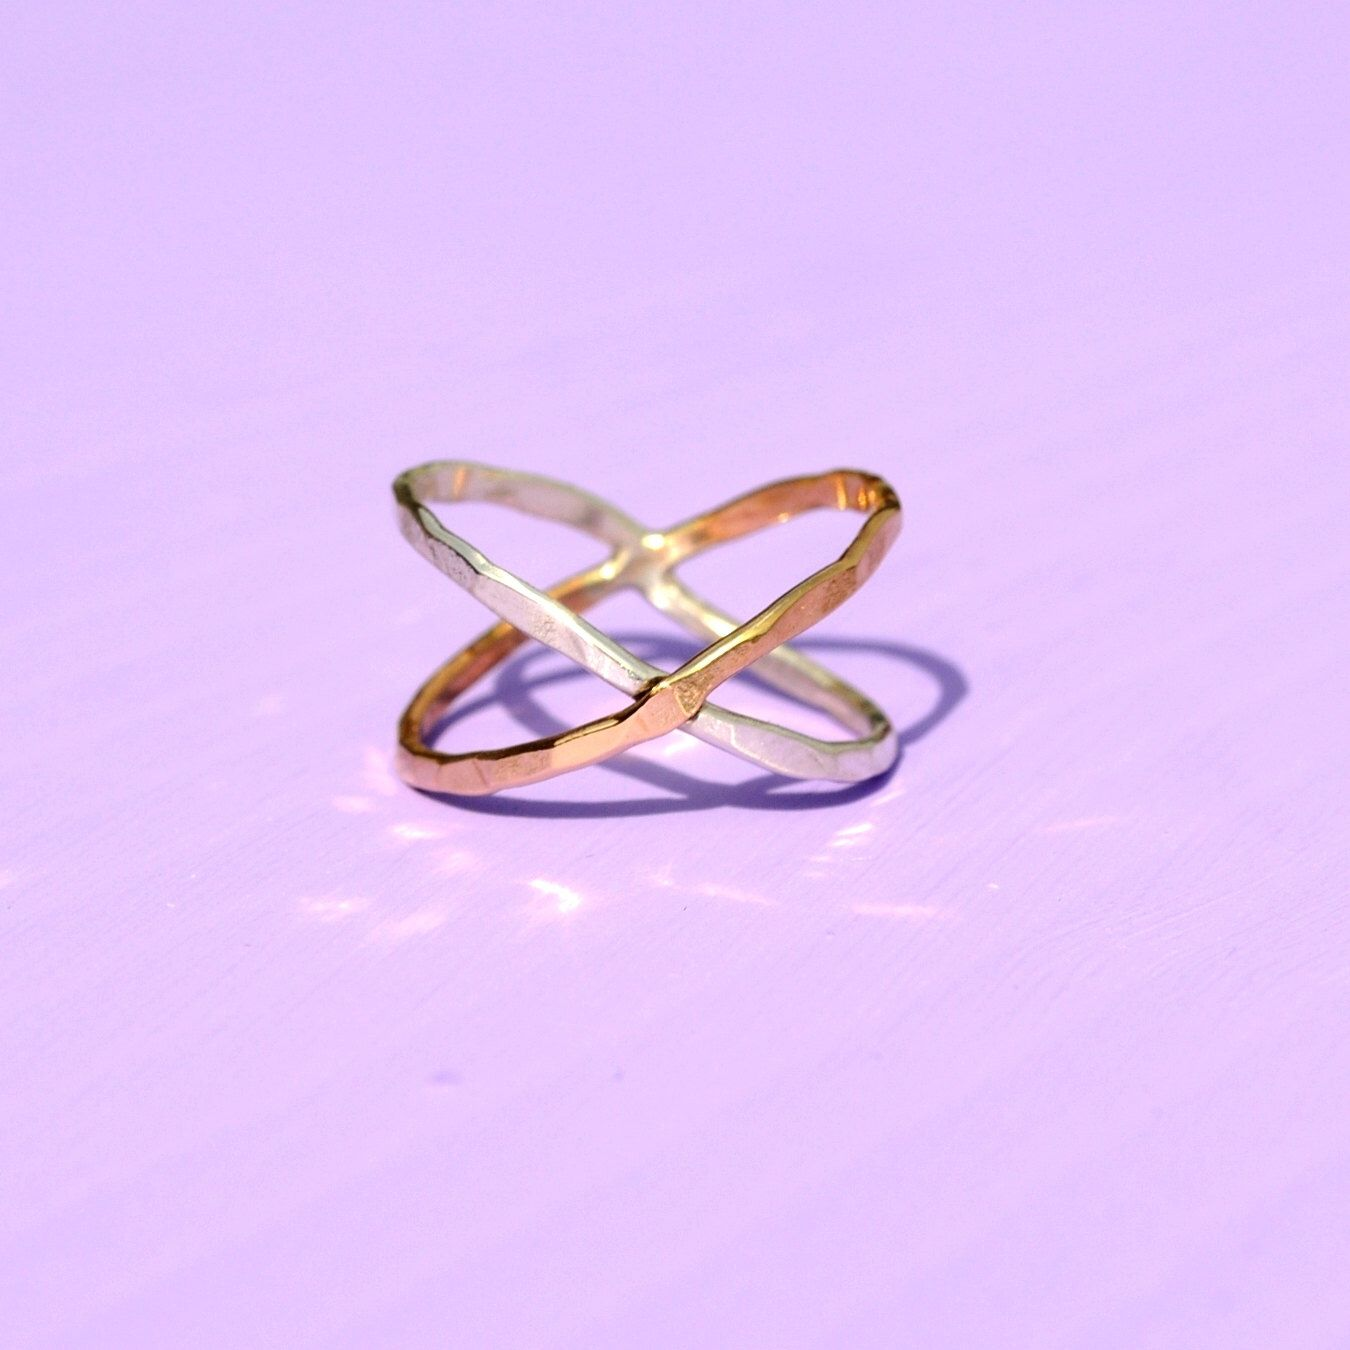 X Ring in Gold + Silver. Hammered Criss Cross Ring. by MetalogicalMetals on Etsy https://www.etsy.com/listing/184625339/x-ring-in-gold-silver-hammered-criss